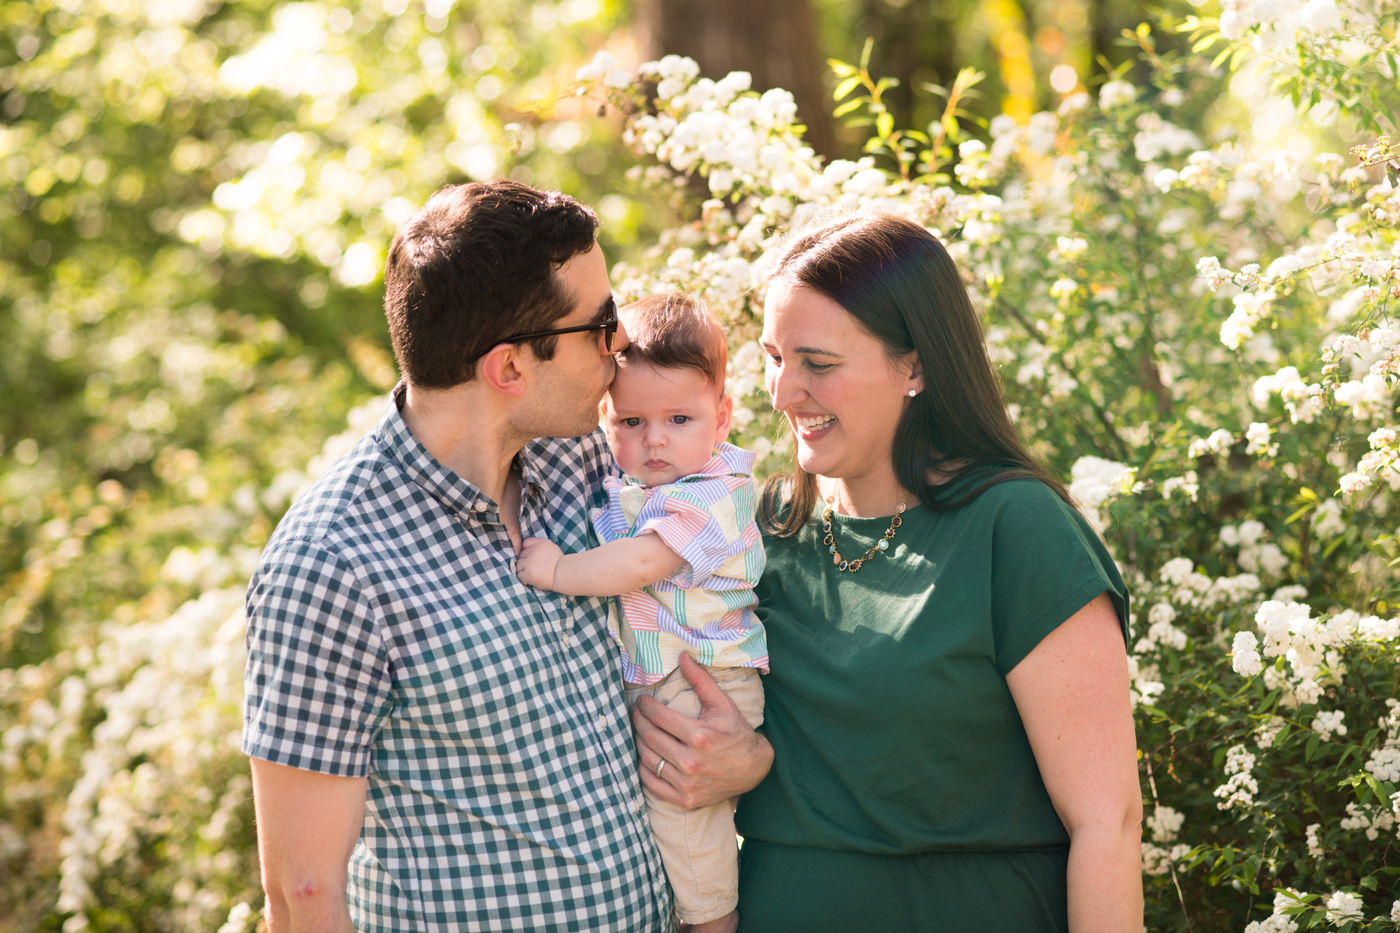 Young family with baby smiling in a garden during ATL family photoshoot by Raven Shutley Studios